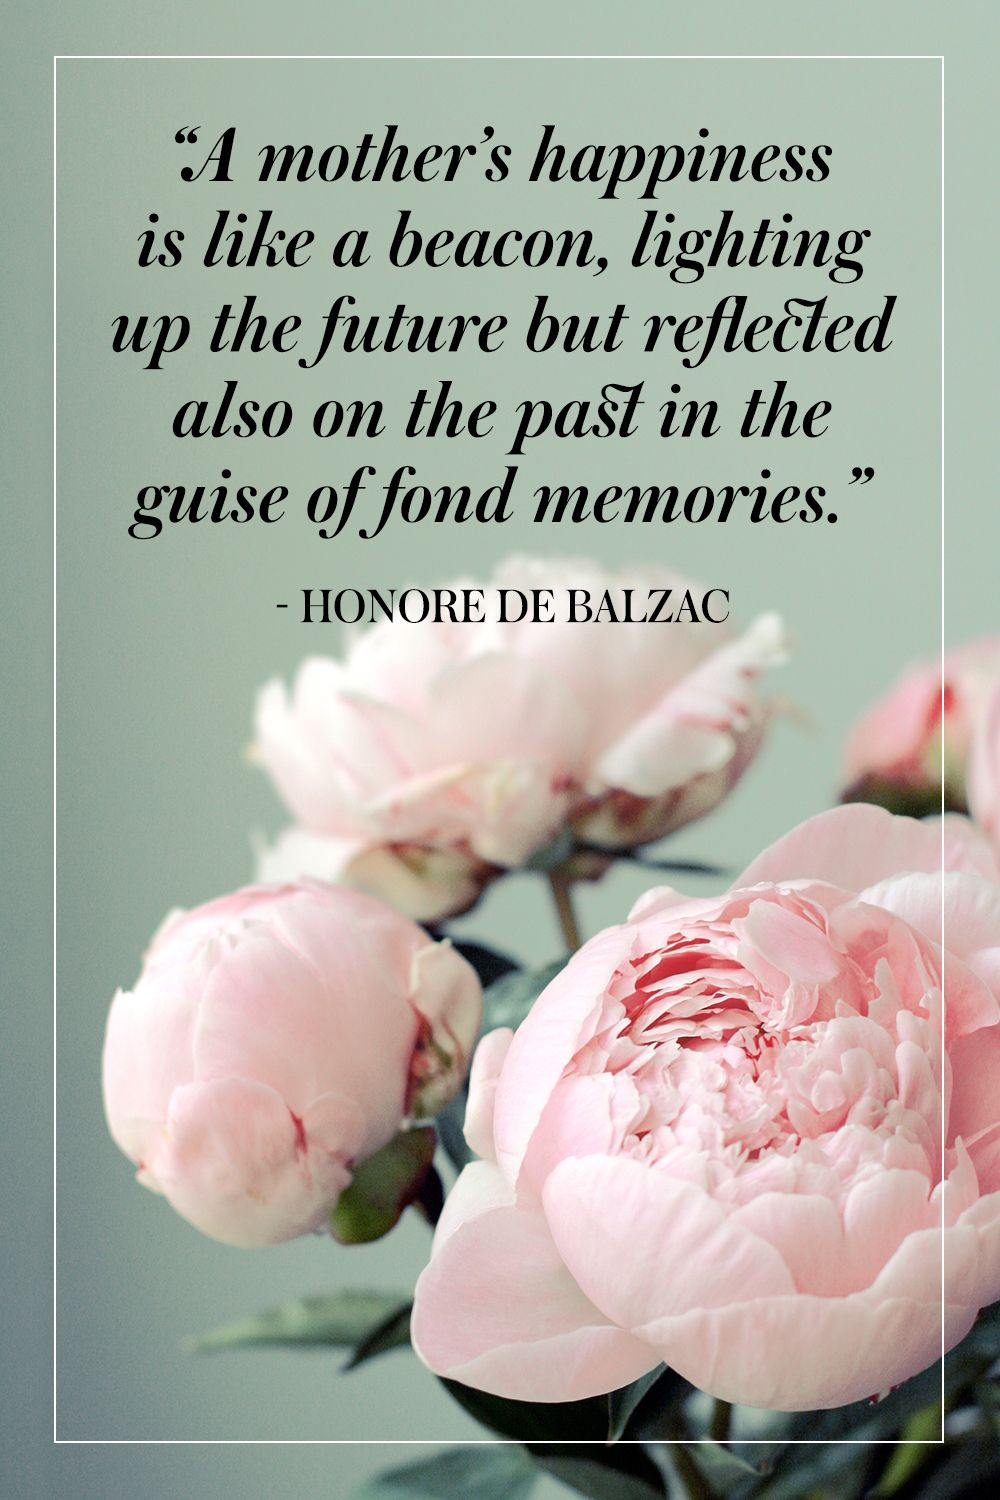 """""""A mother's happiness is like a beacon, lighting up the future but reflected also on the past in the guise of fond memories."""" - Honore de Balzac"""